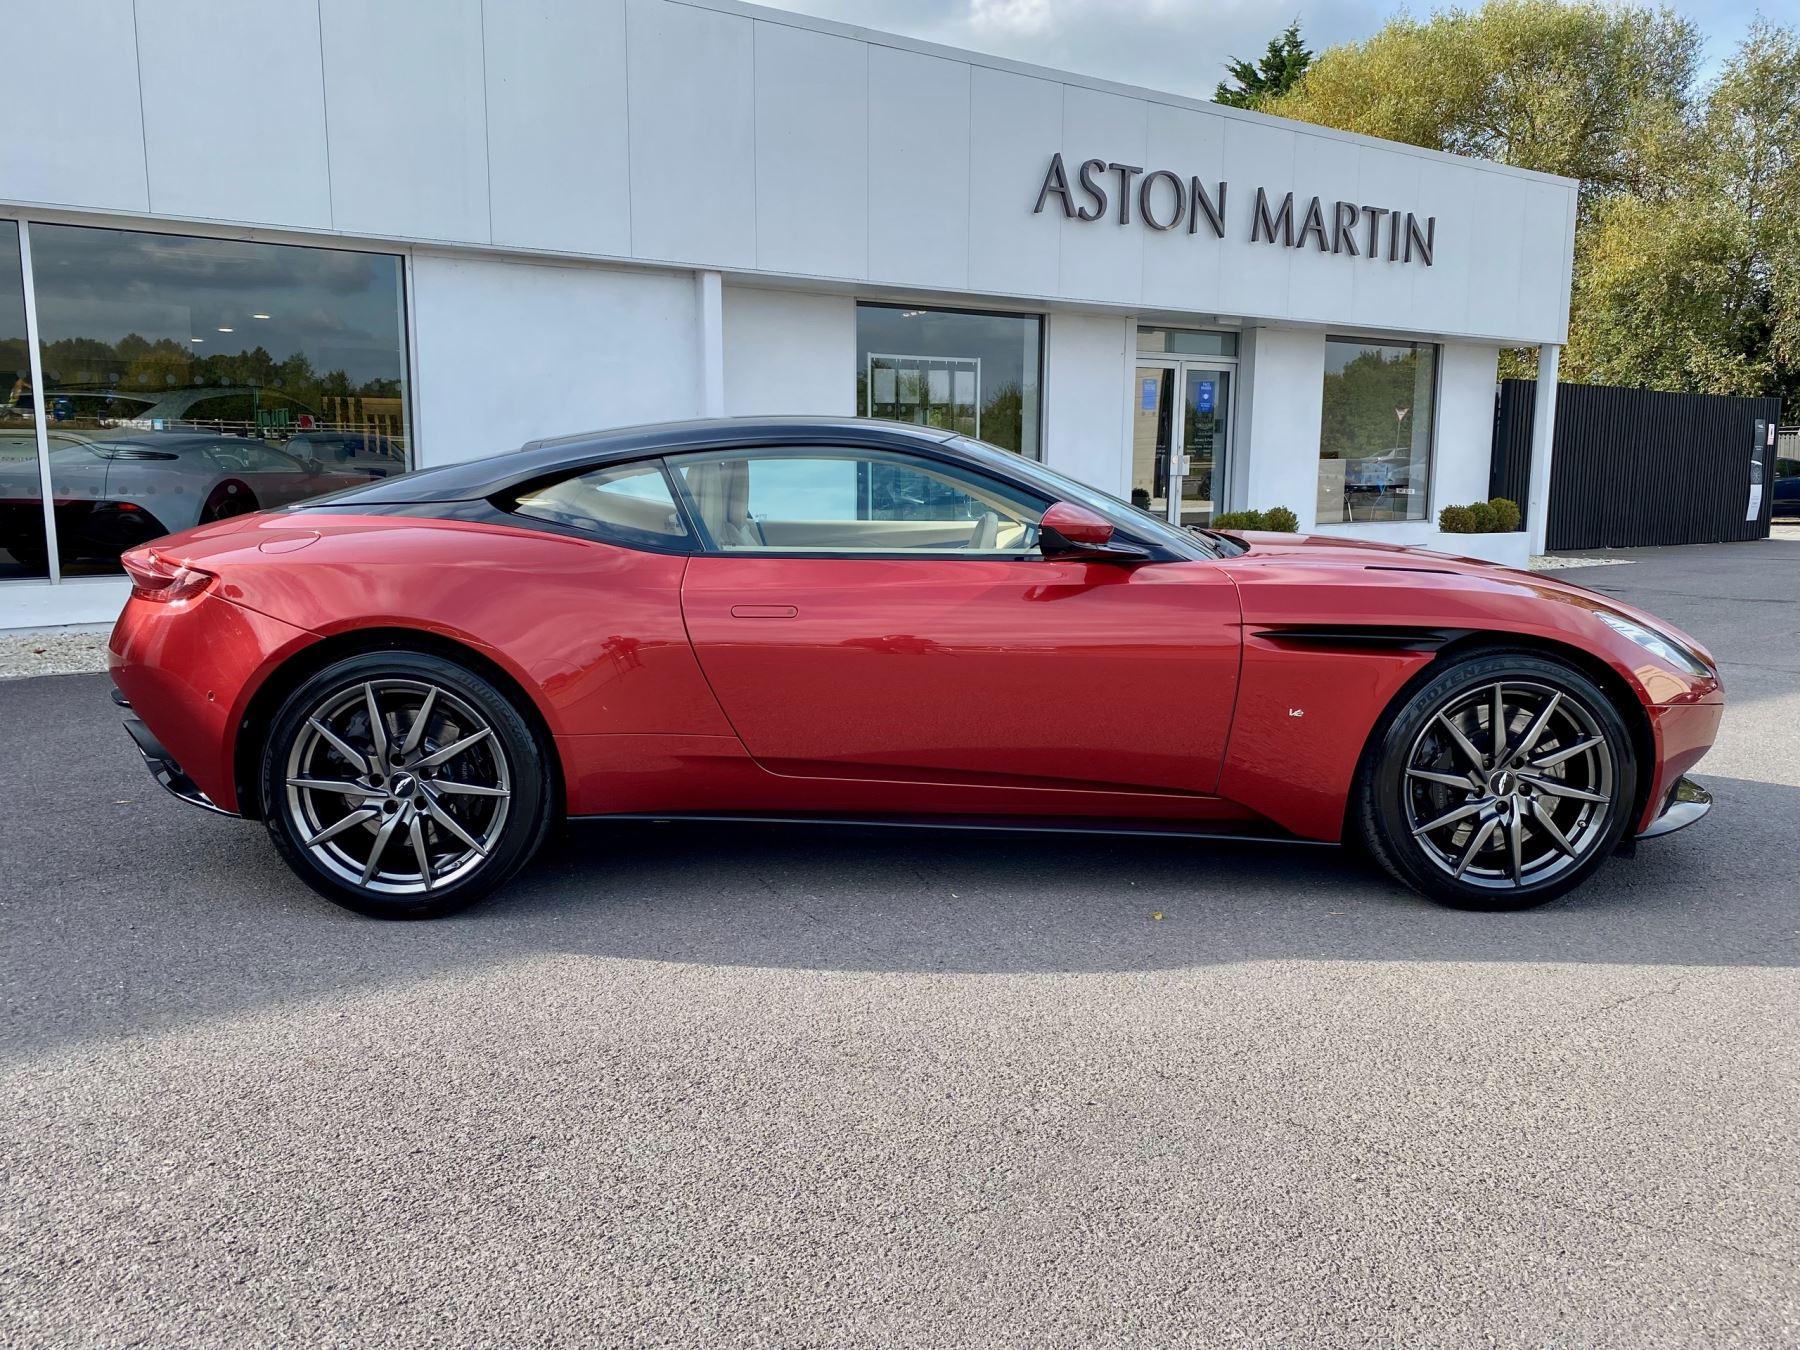 Aston Martin DB11 V12 Launch Edition Coupe. Bang & Olufsen Beosound Audio. Black brake calipers. Ventilated Seats image 8